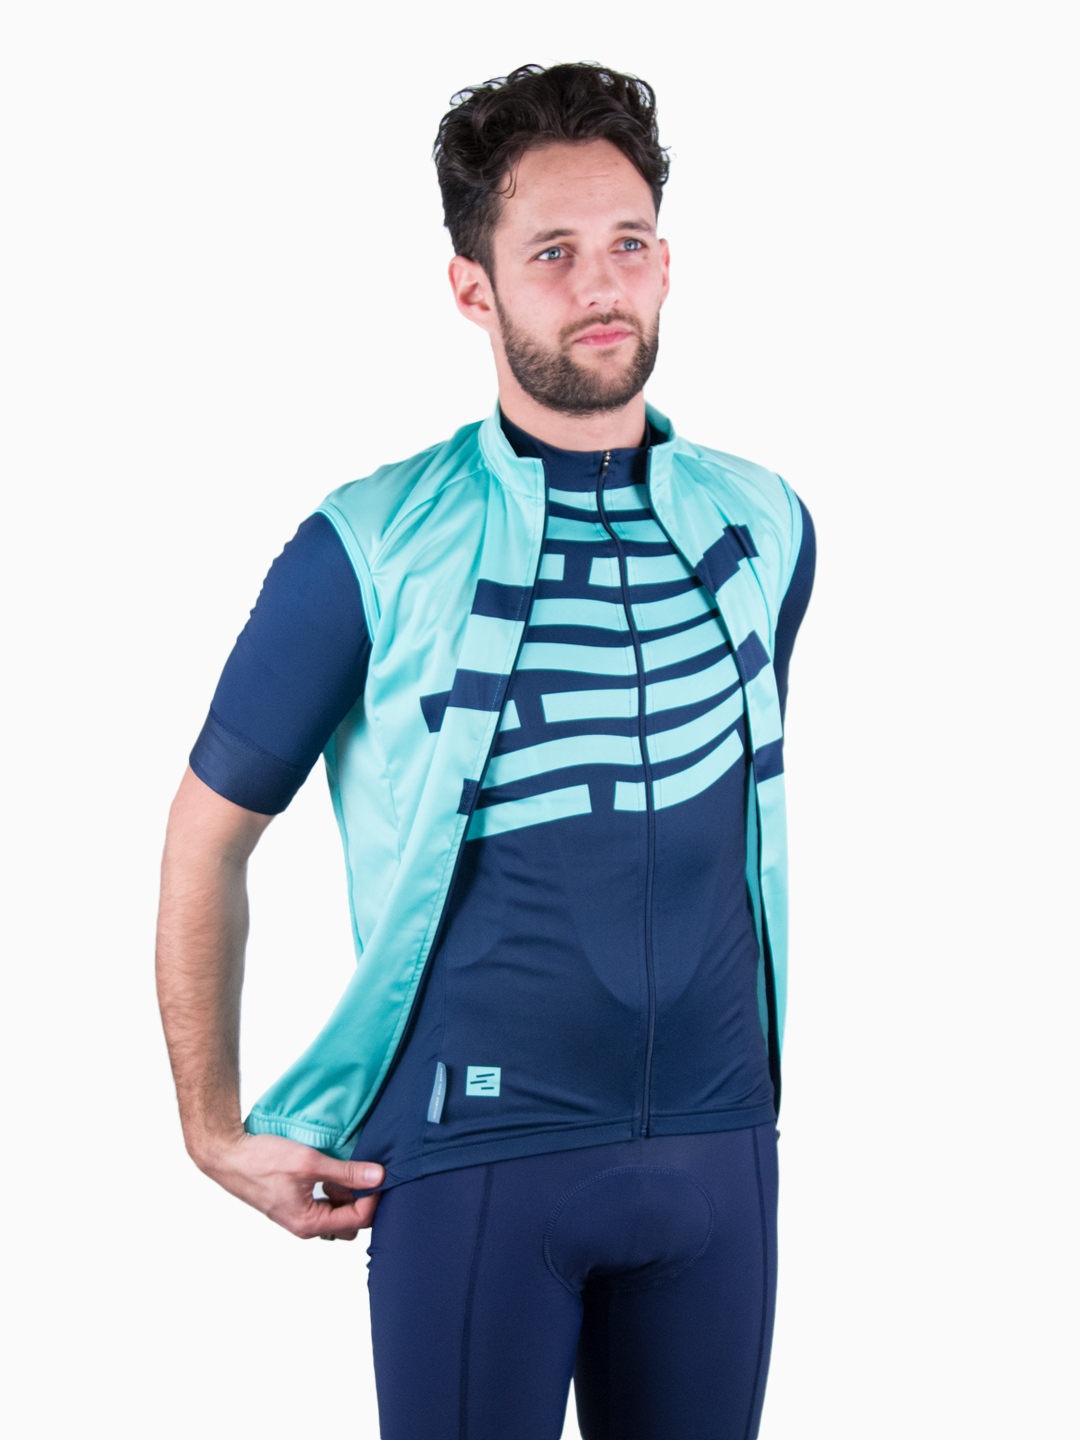 goodcycling_product_Windvest_3